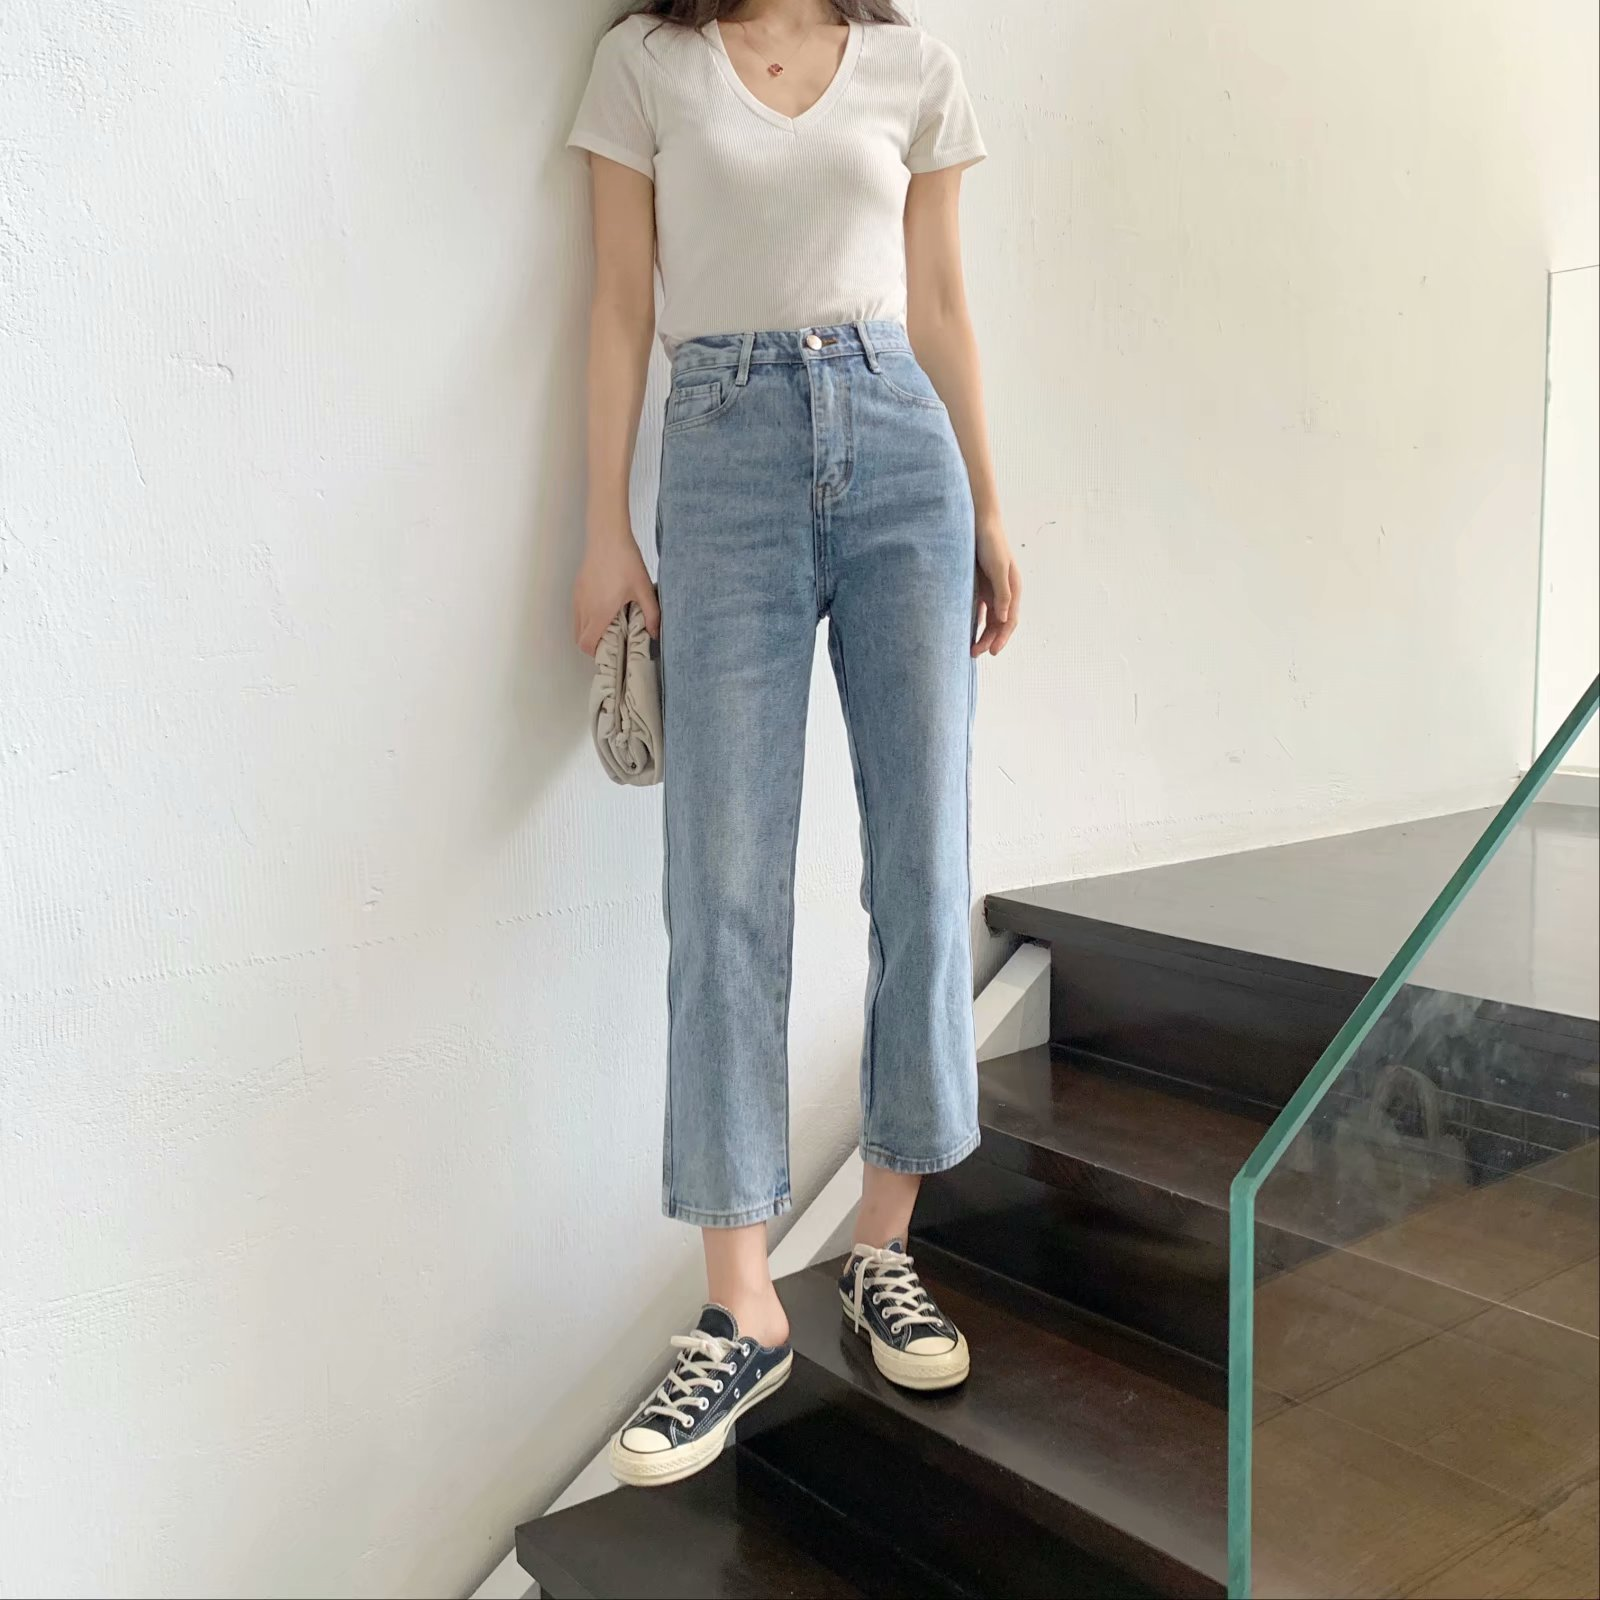 WOMEN'S Dress 2019 Autumn Jeans Women's Korean-style CHIC Retro Straight-Cut Slimming Capri Straight-leg Pants Women's Fashion